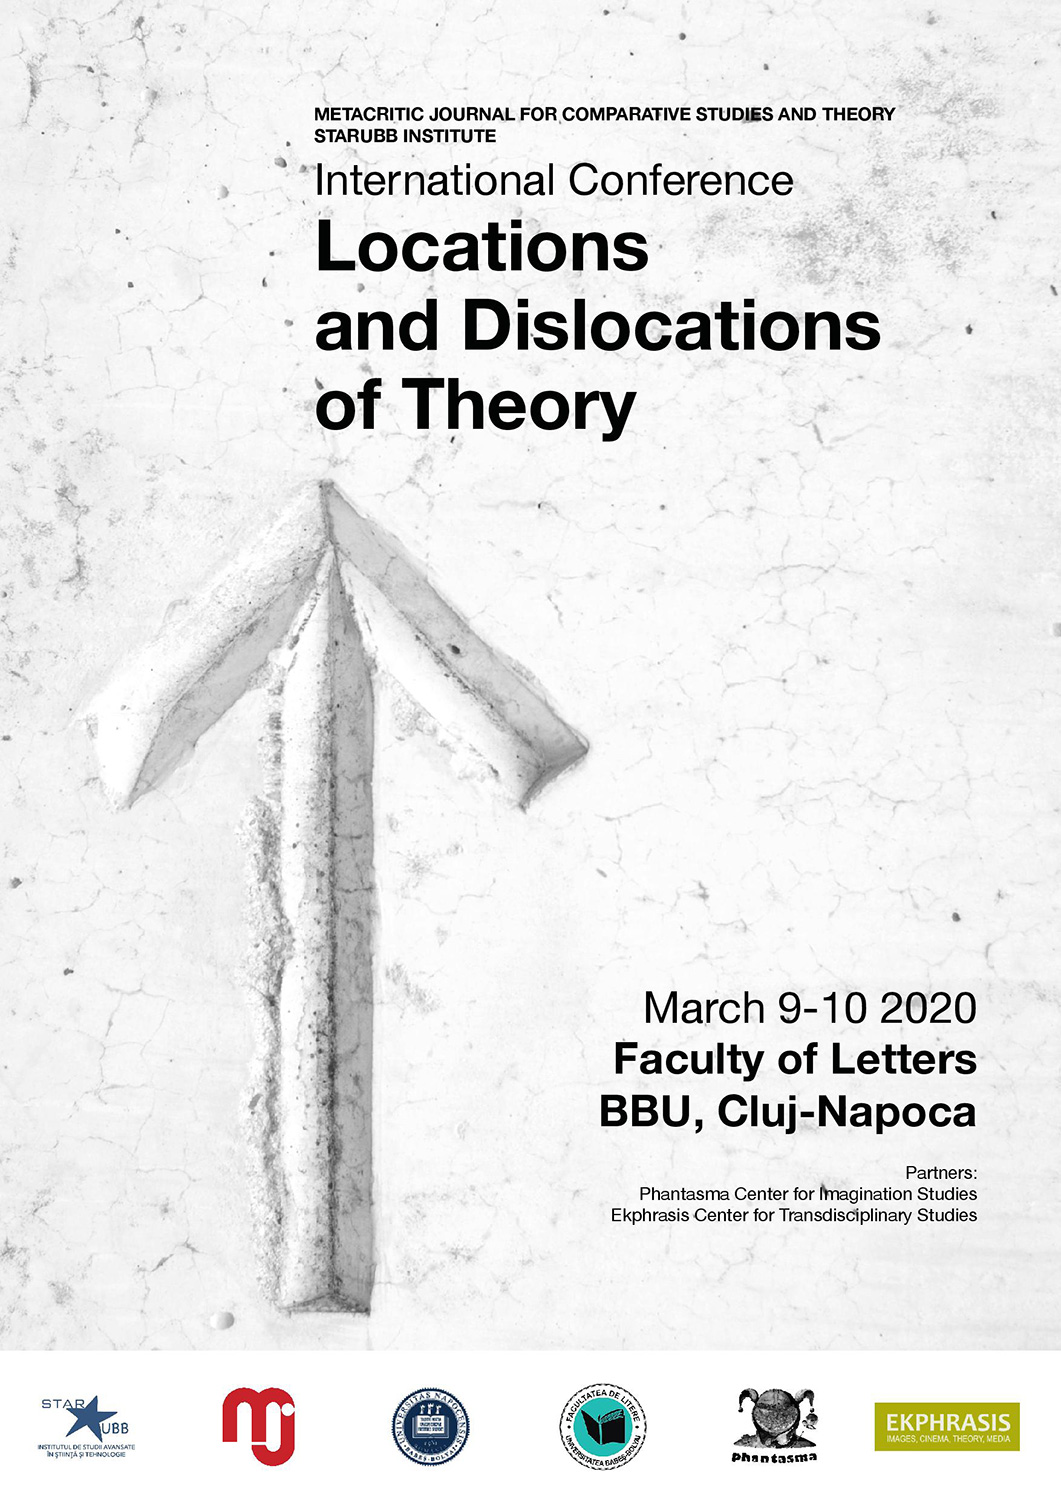 Locations and Dislocations of Theory